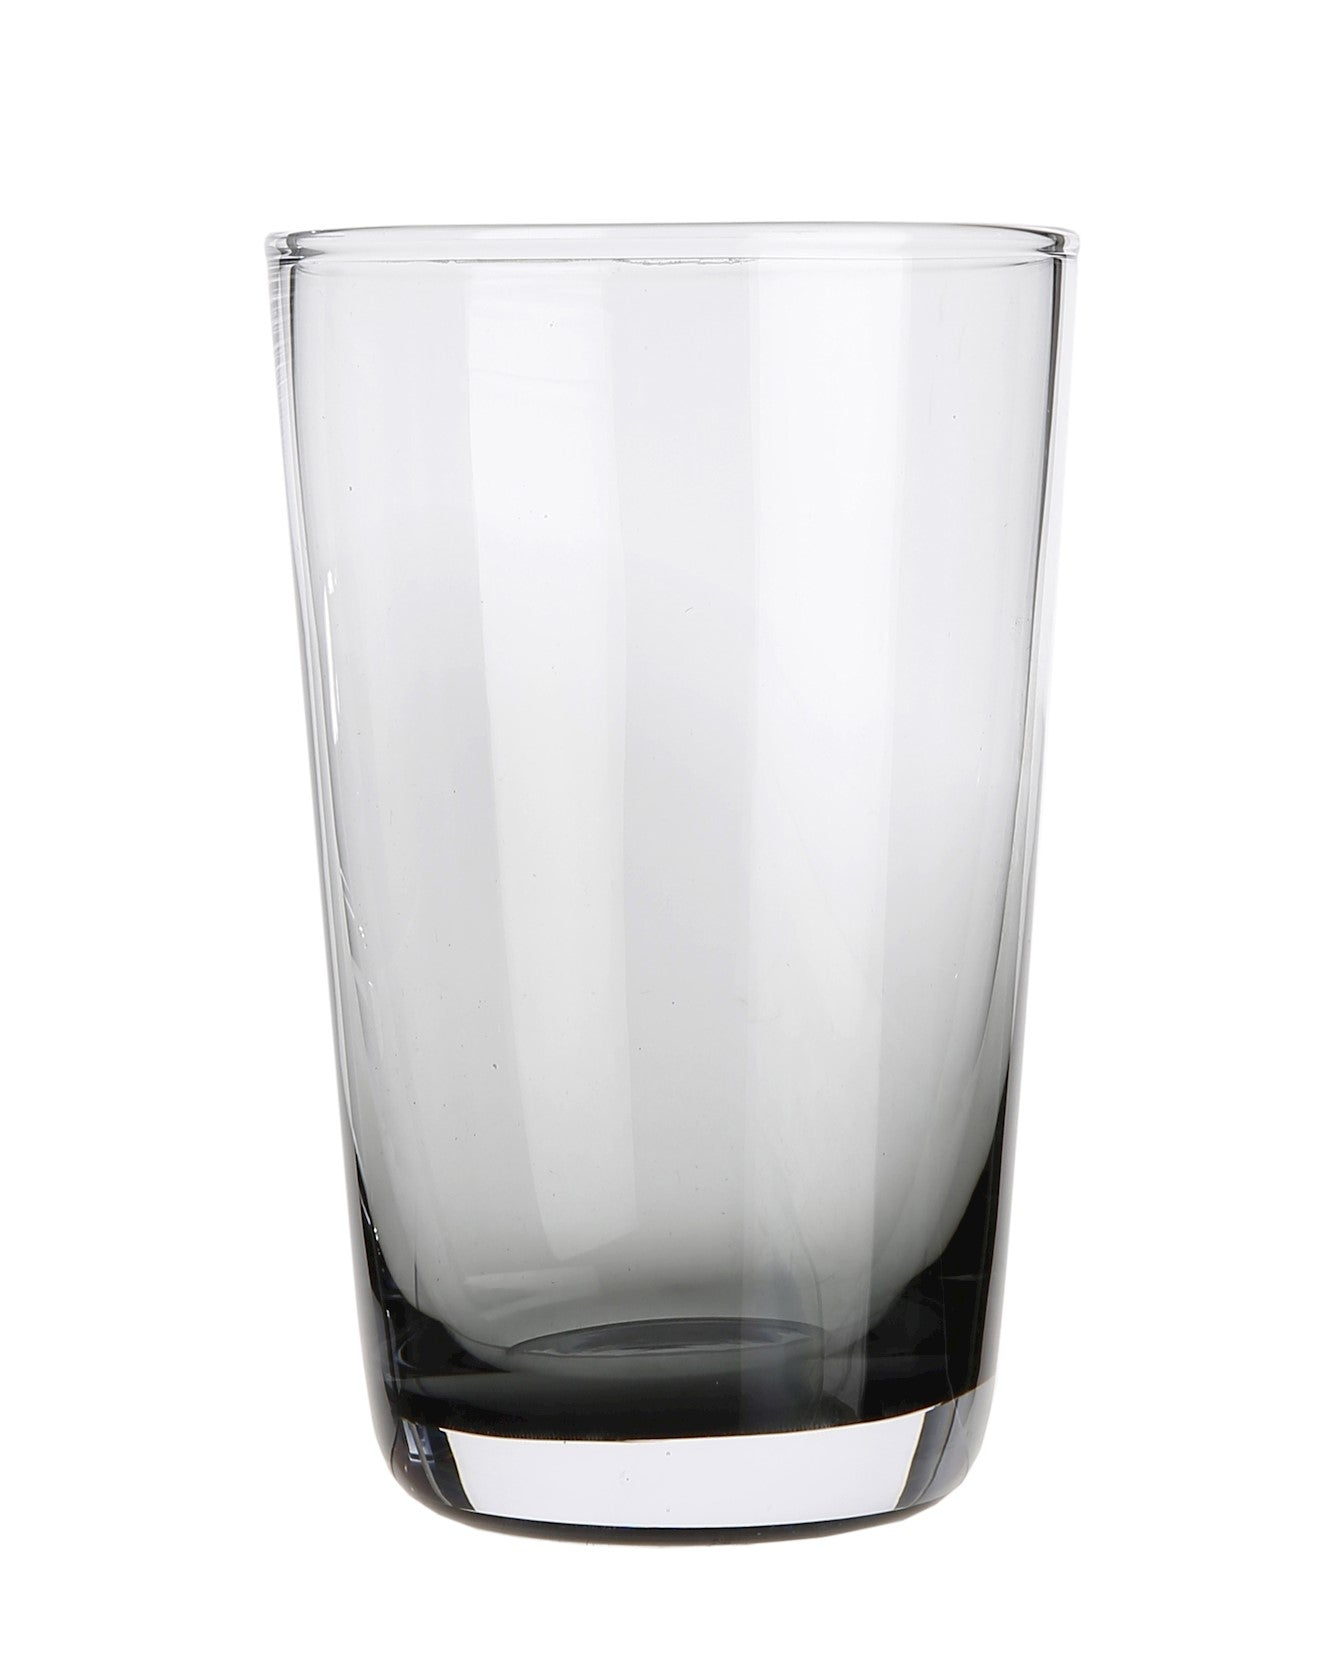 TALL GLASSES 'SPLASH' ( 6 x ) - Drinkware - SCAPA HOME - SCAPA HOME OFFICIAL